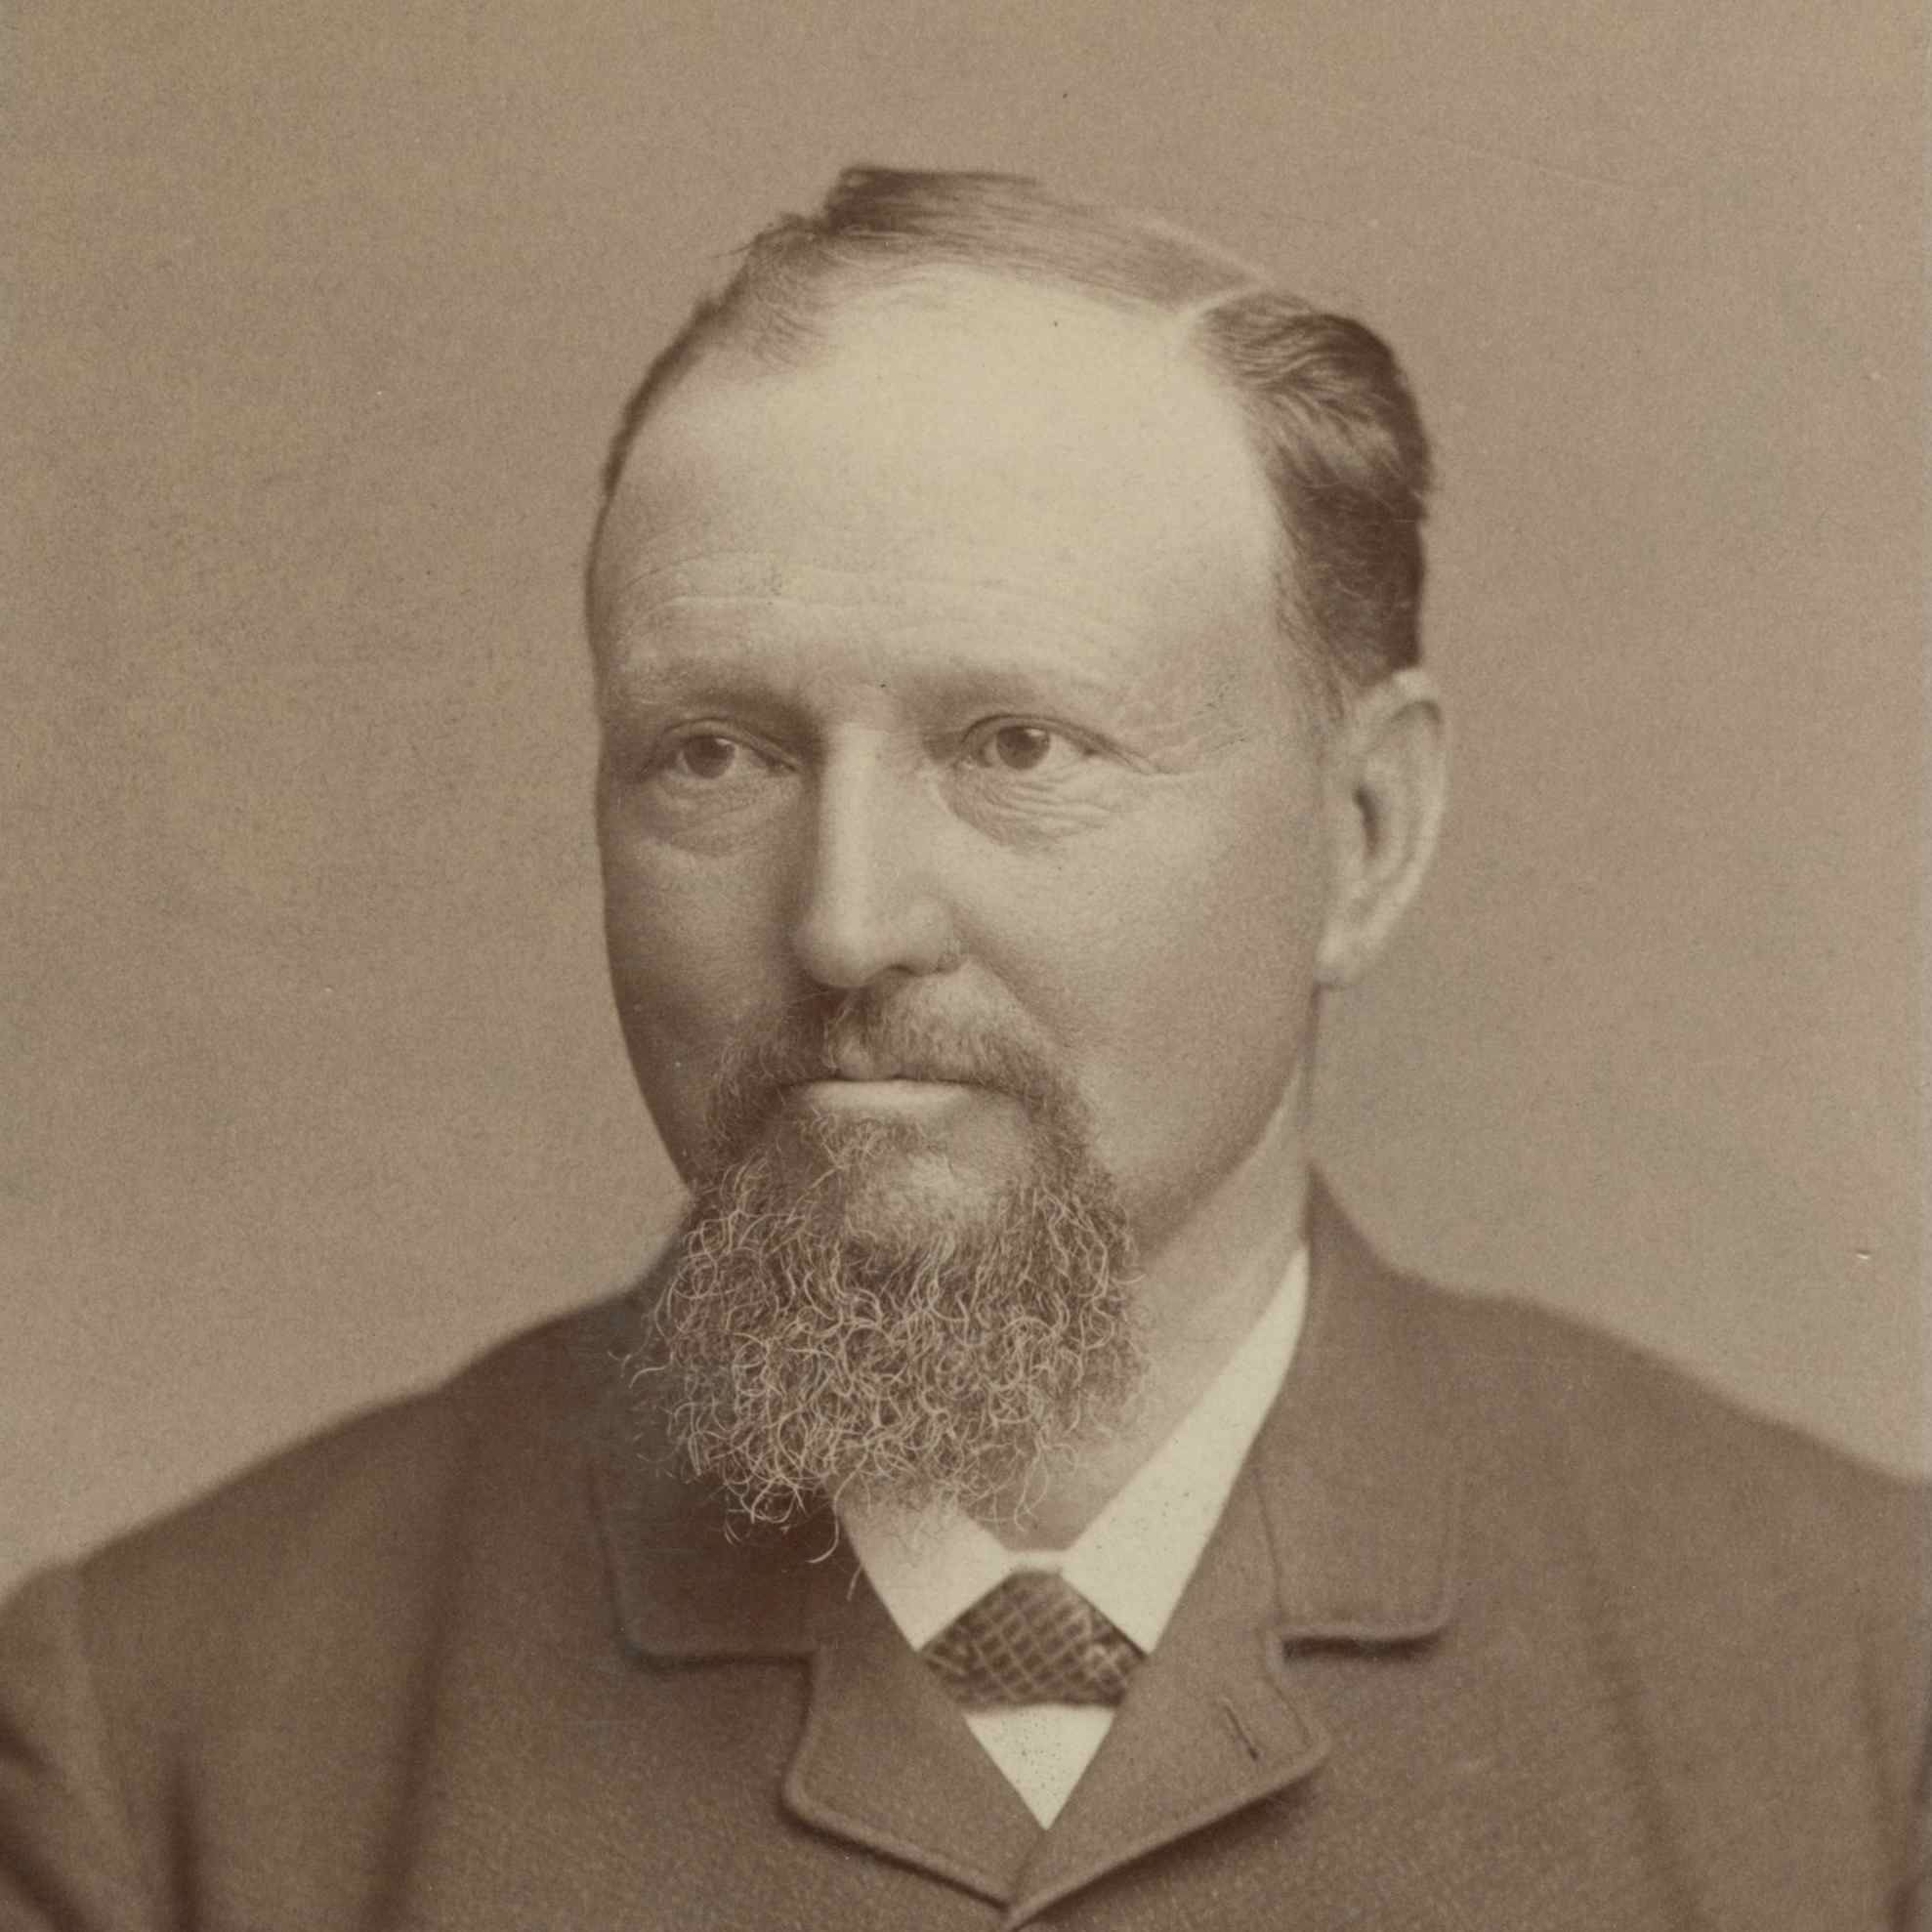 Image taken in the 1880s